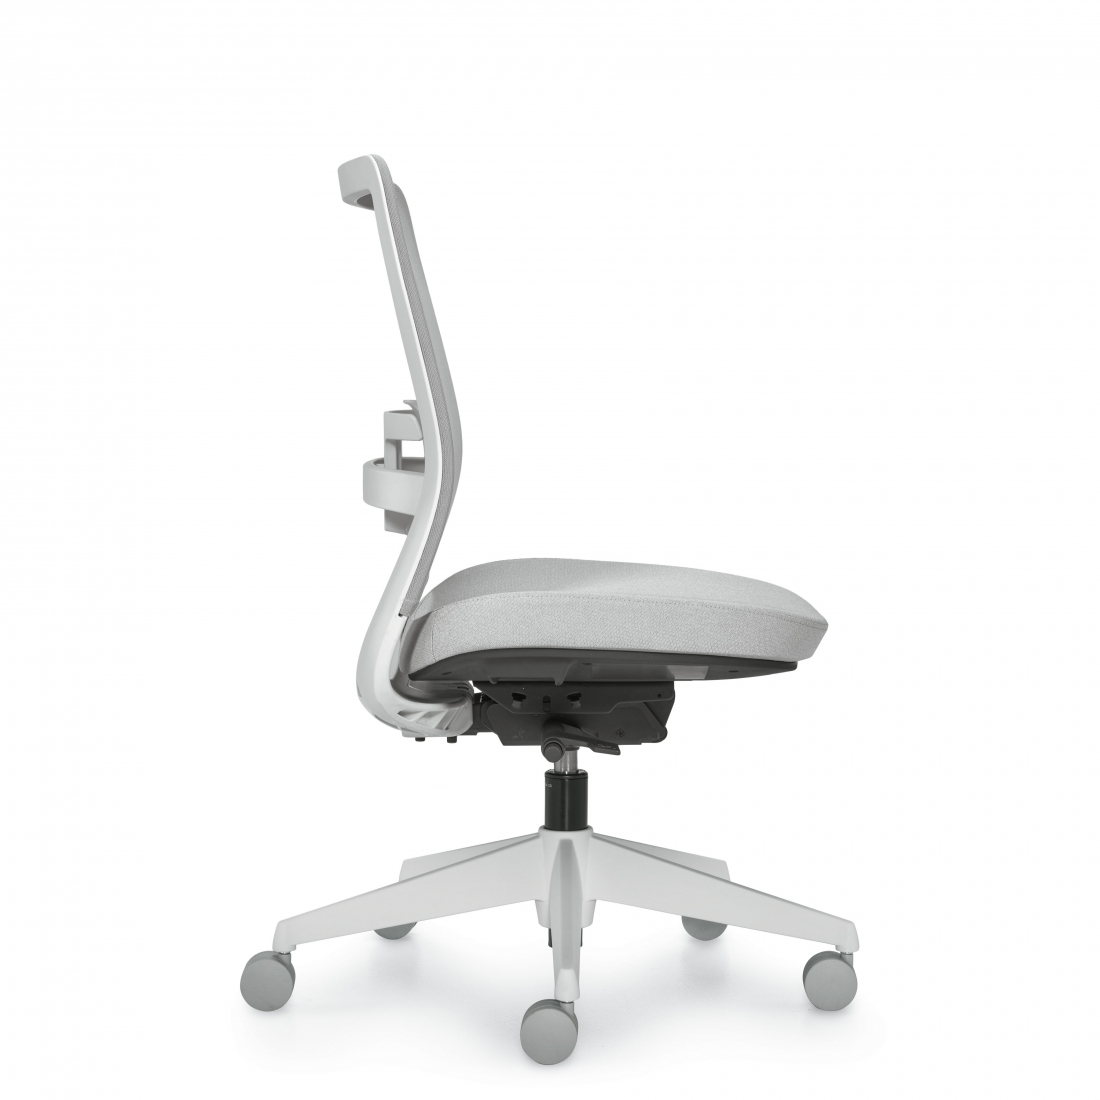 5541na global factor chair side view